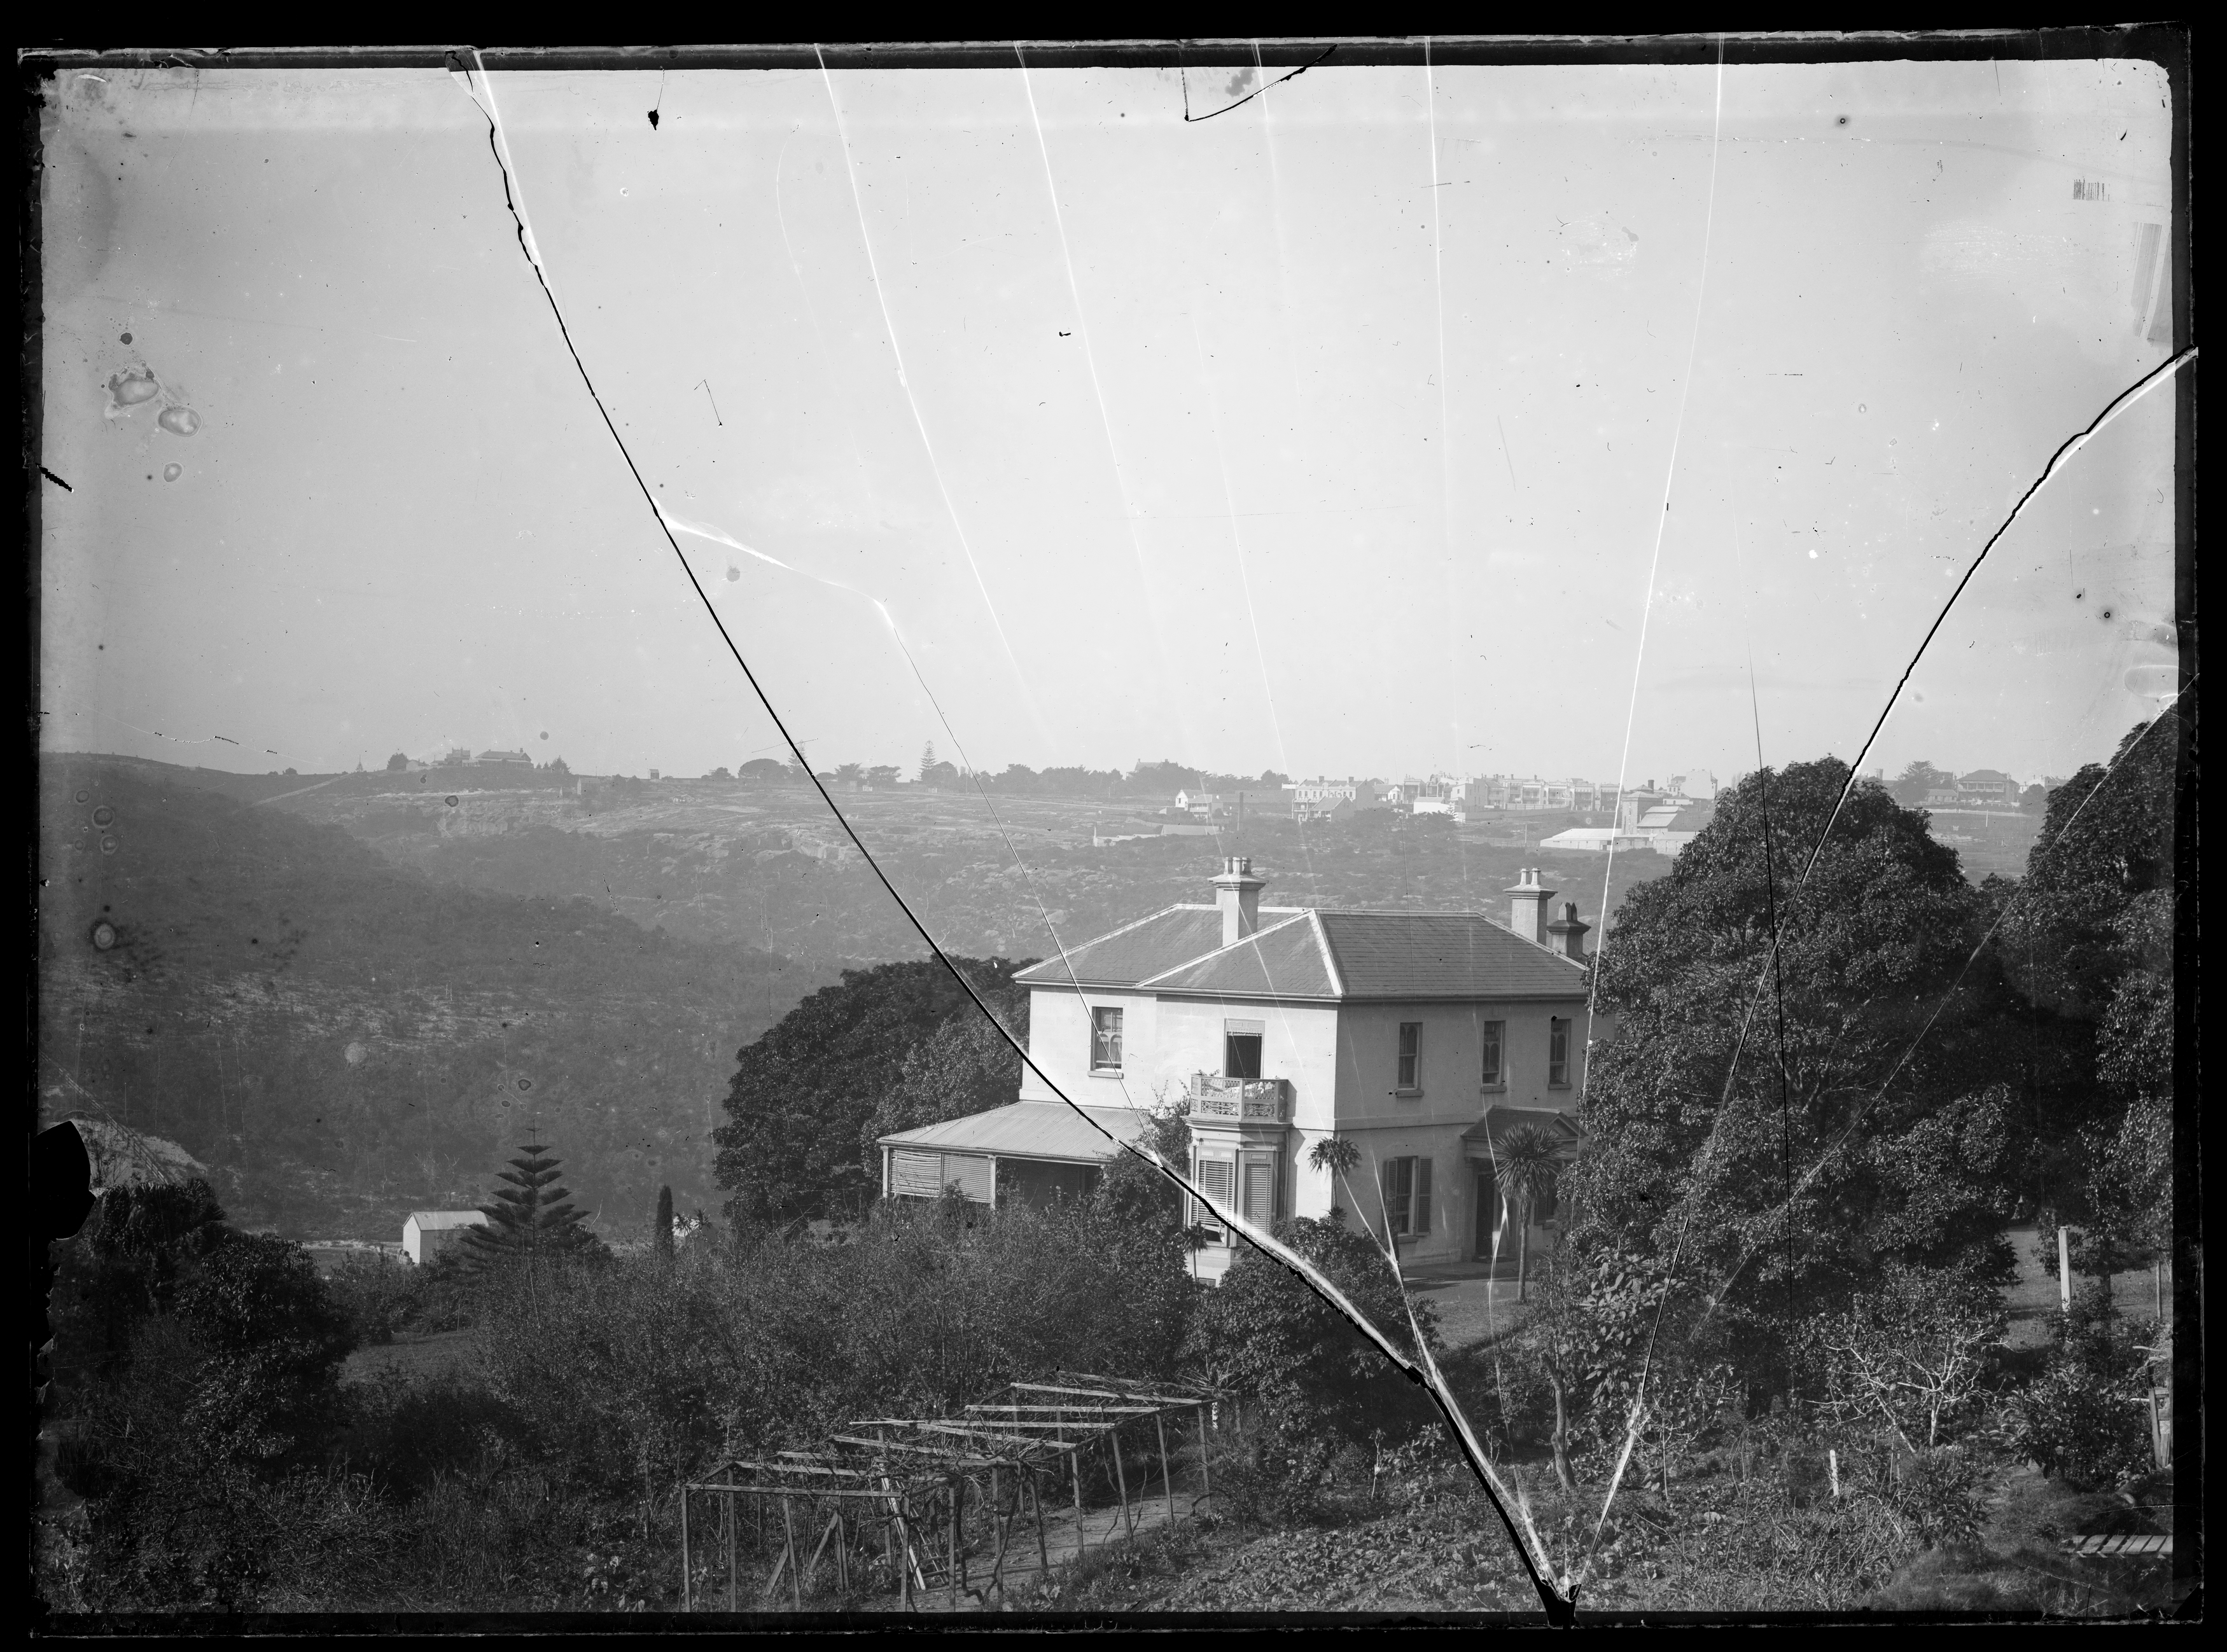 Hawthornden house, from Edgecliff Road, Woollahra